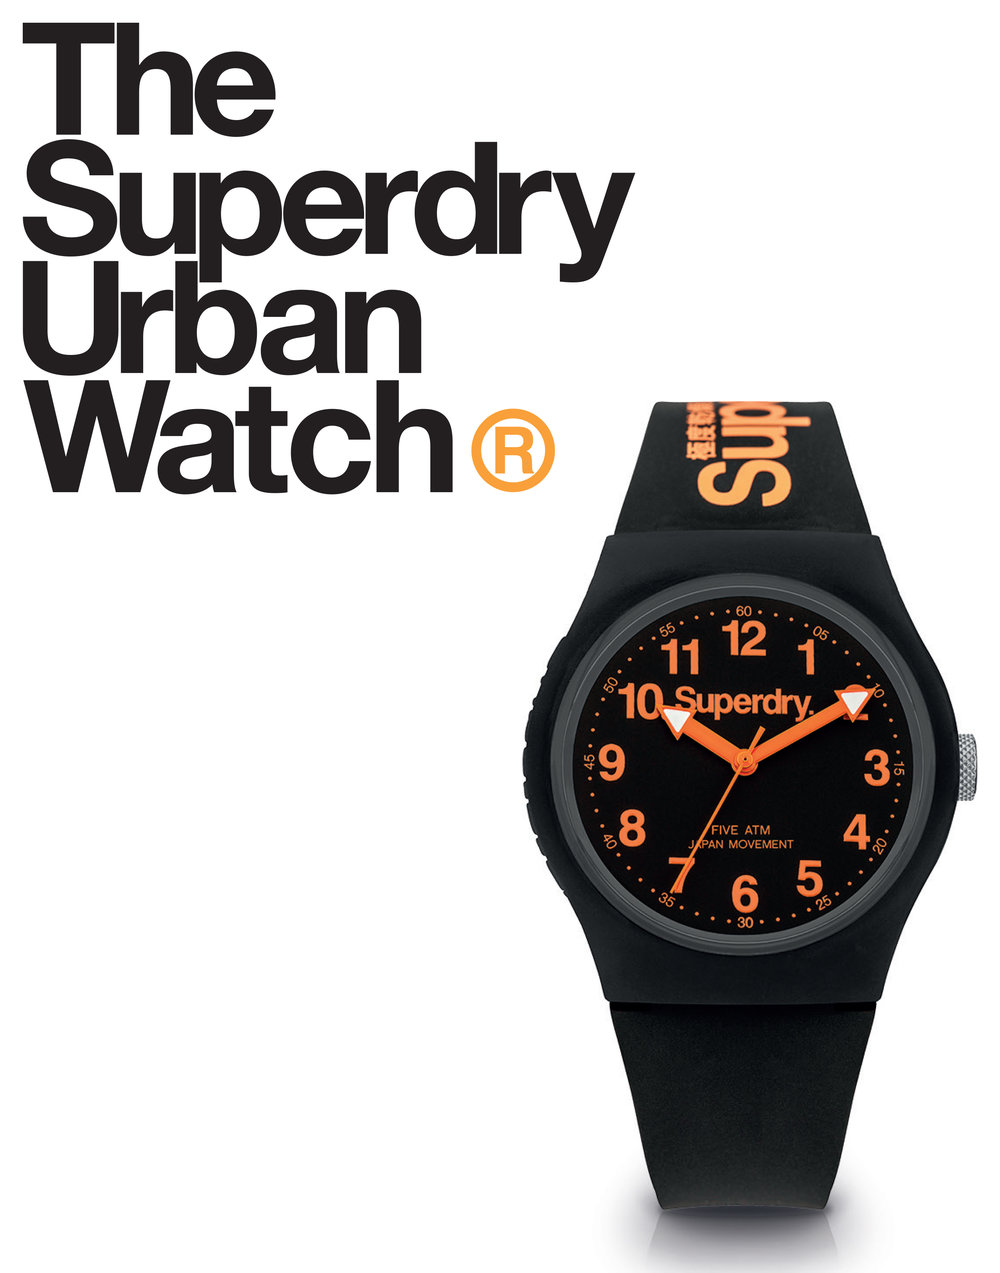 superdry-urban-watch_scorpio-worldwide_travel-retail-distributor